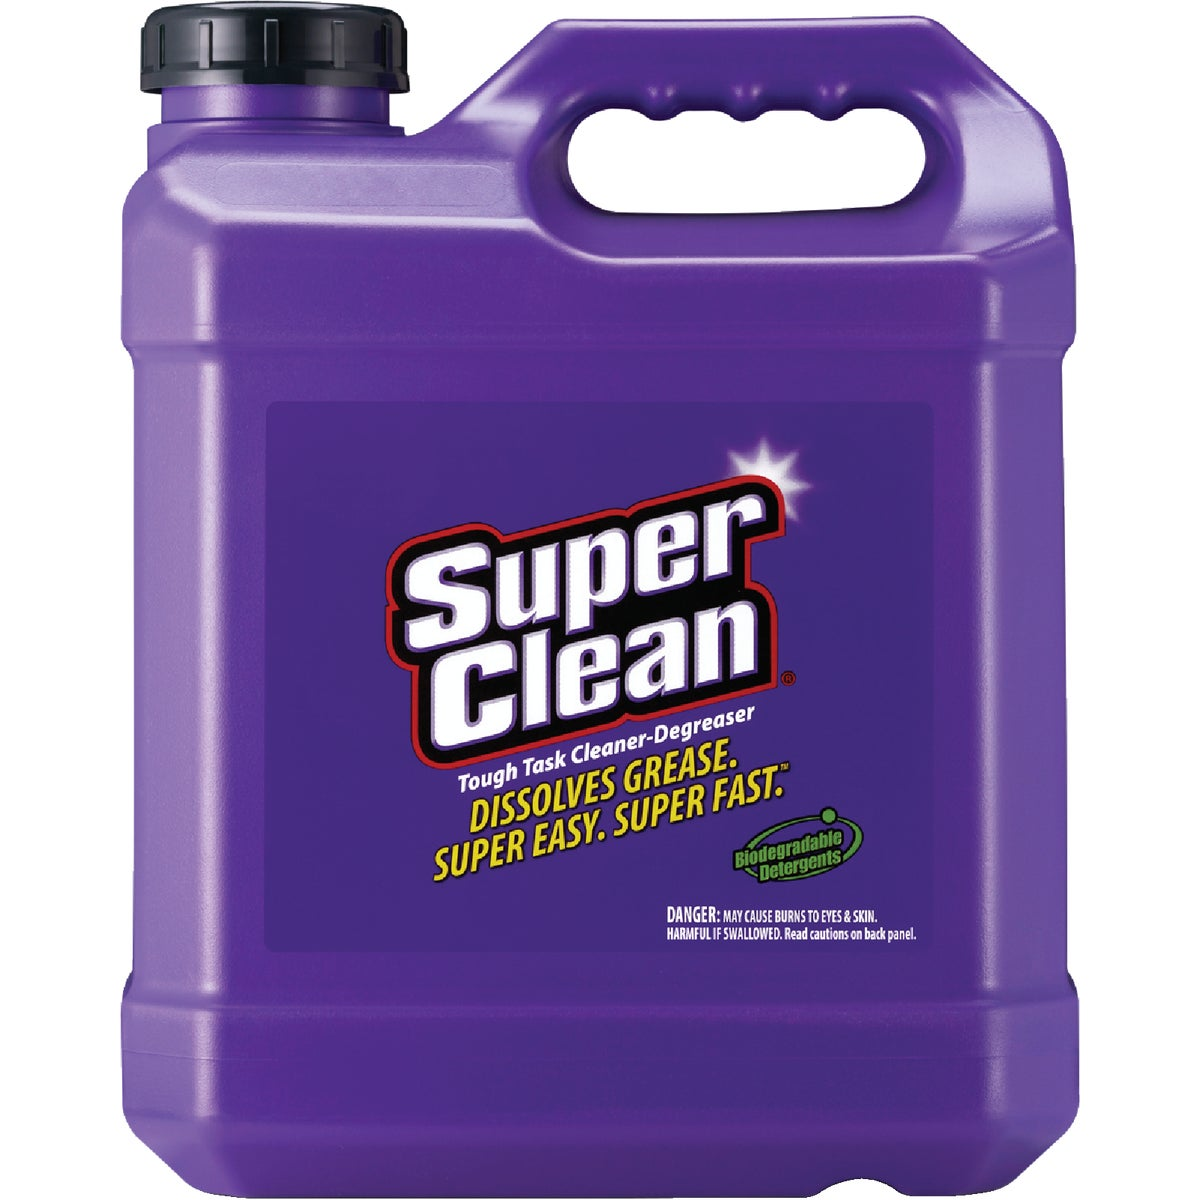 2.5 SUPERCLEAN DEGREASER - 101724 by Superclean